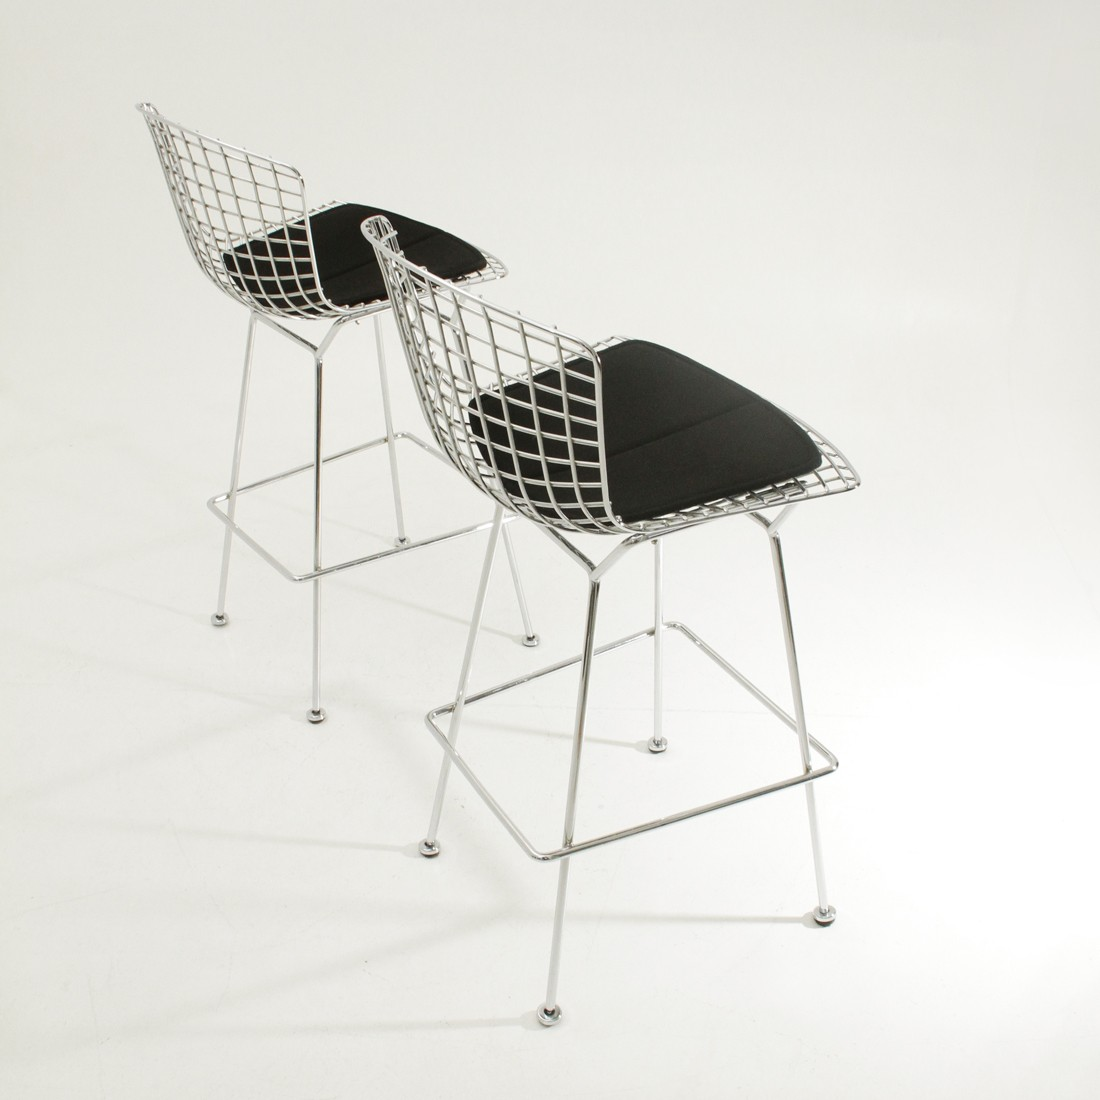 Pair Of Bertoia Chairs By Harry Bertoia For Knoll